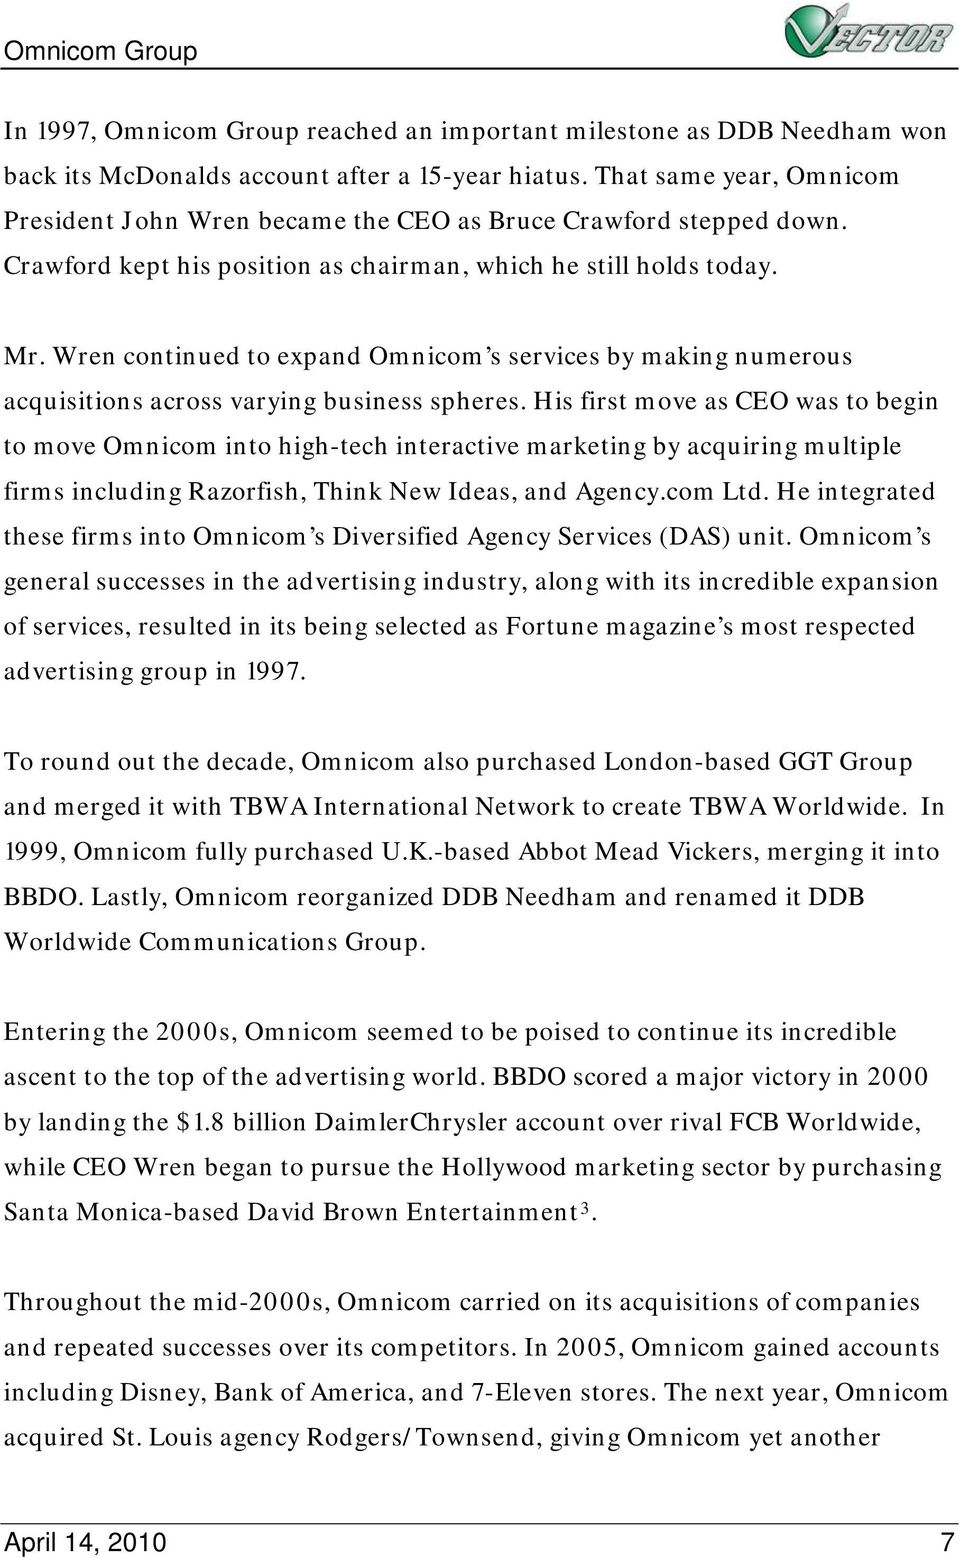 Wren continued to expand Omnicom s services by making numerous acquisitions across varying business spheres.